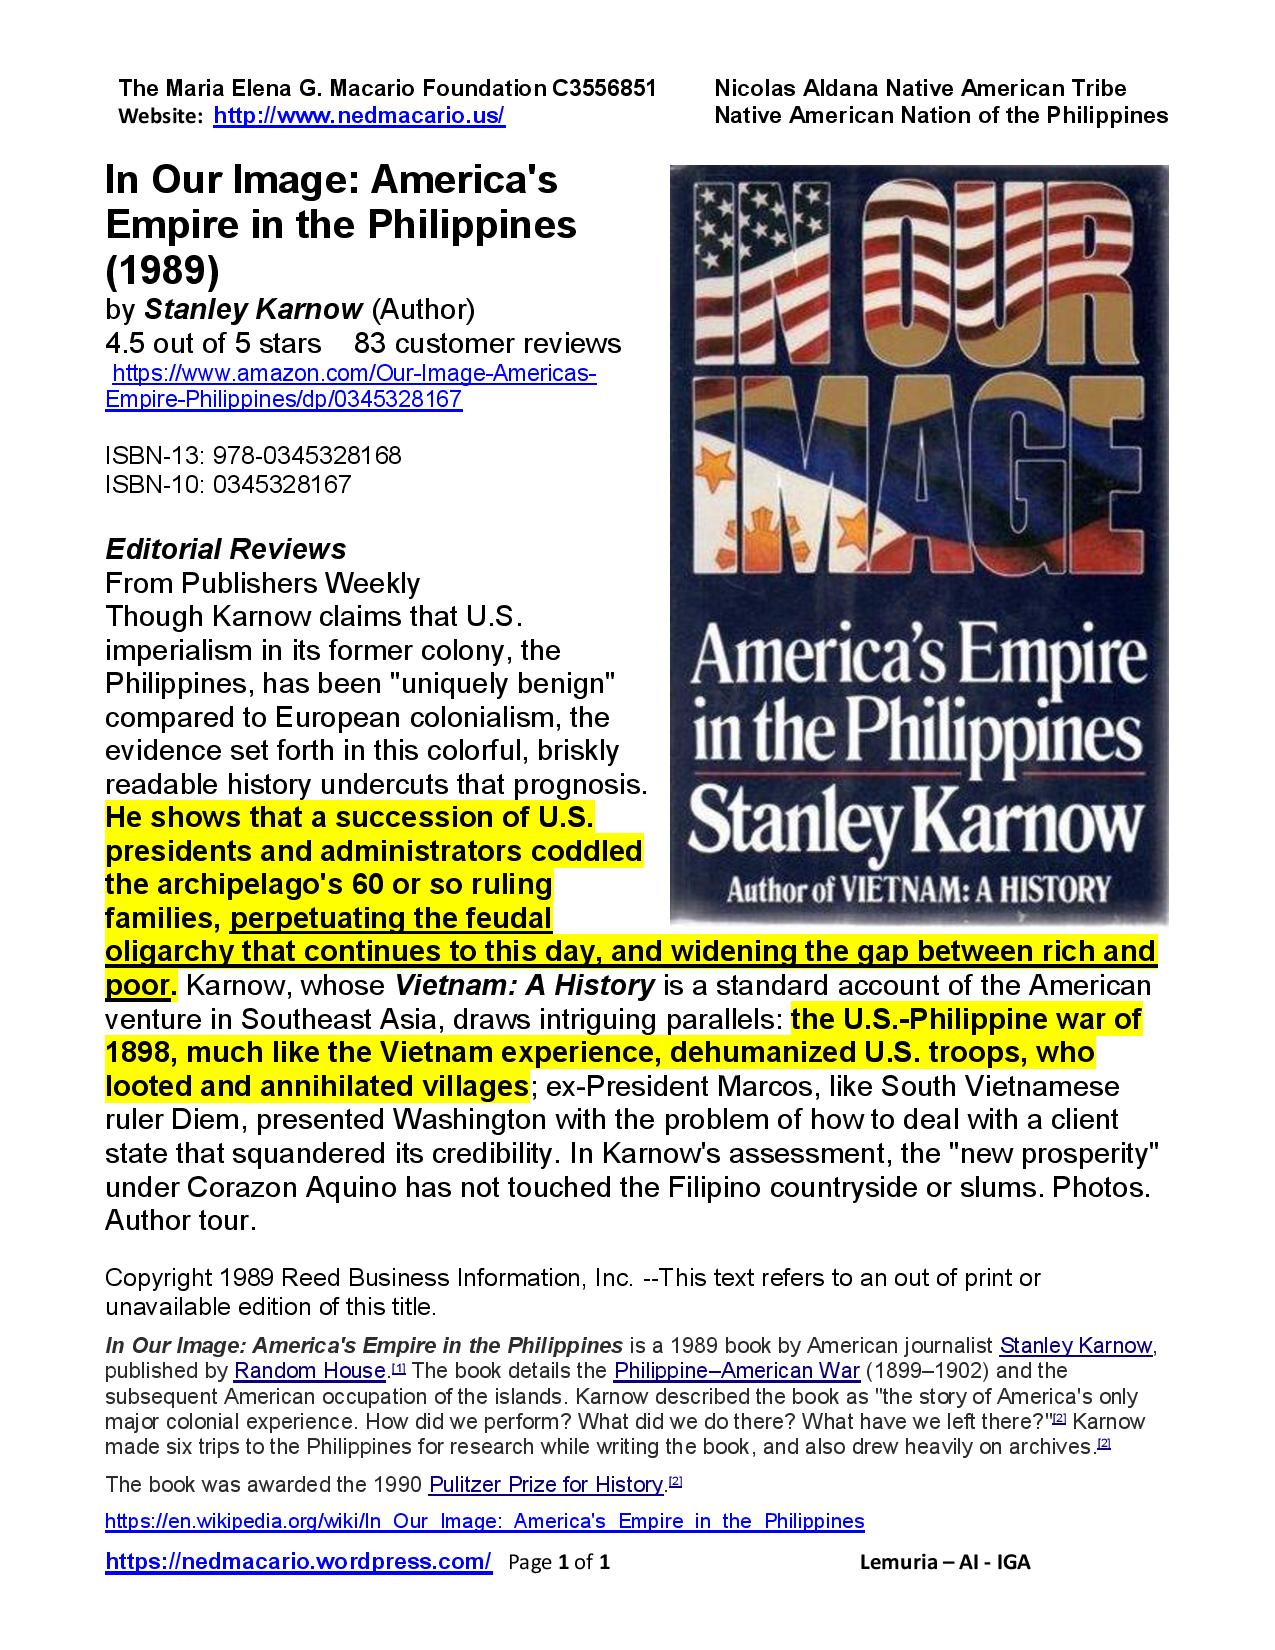 Book Review of S. Karnow's In Our Image - America s Empire in the Philippines (1989)